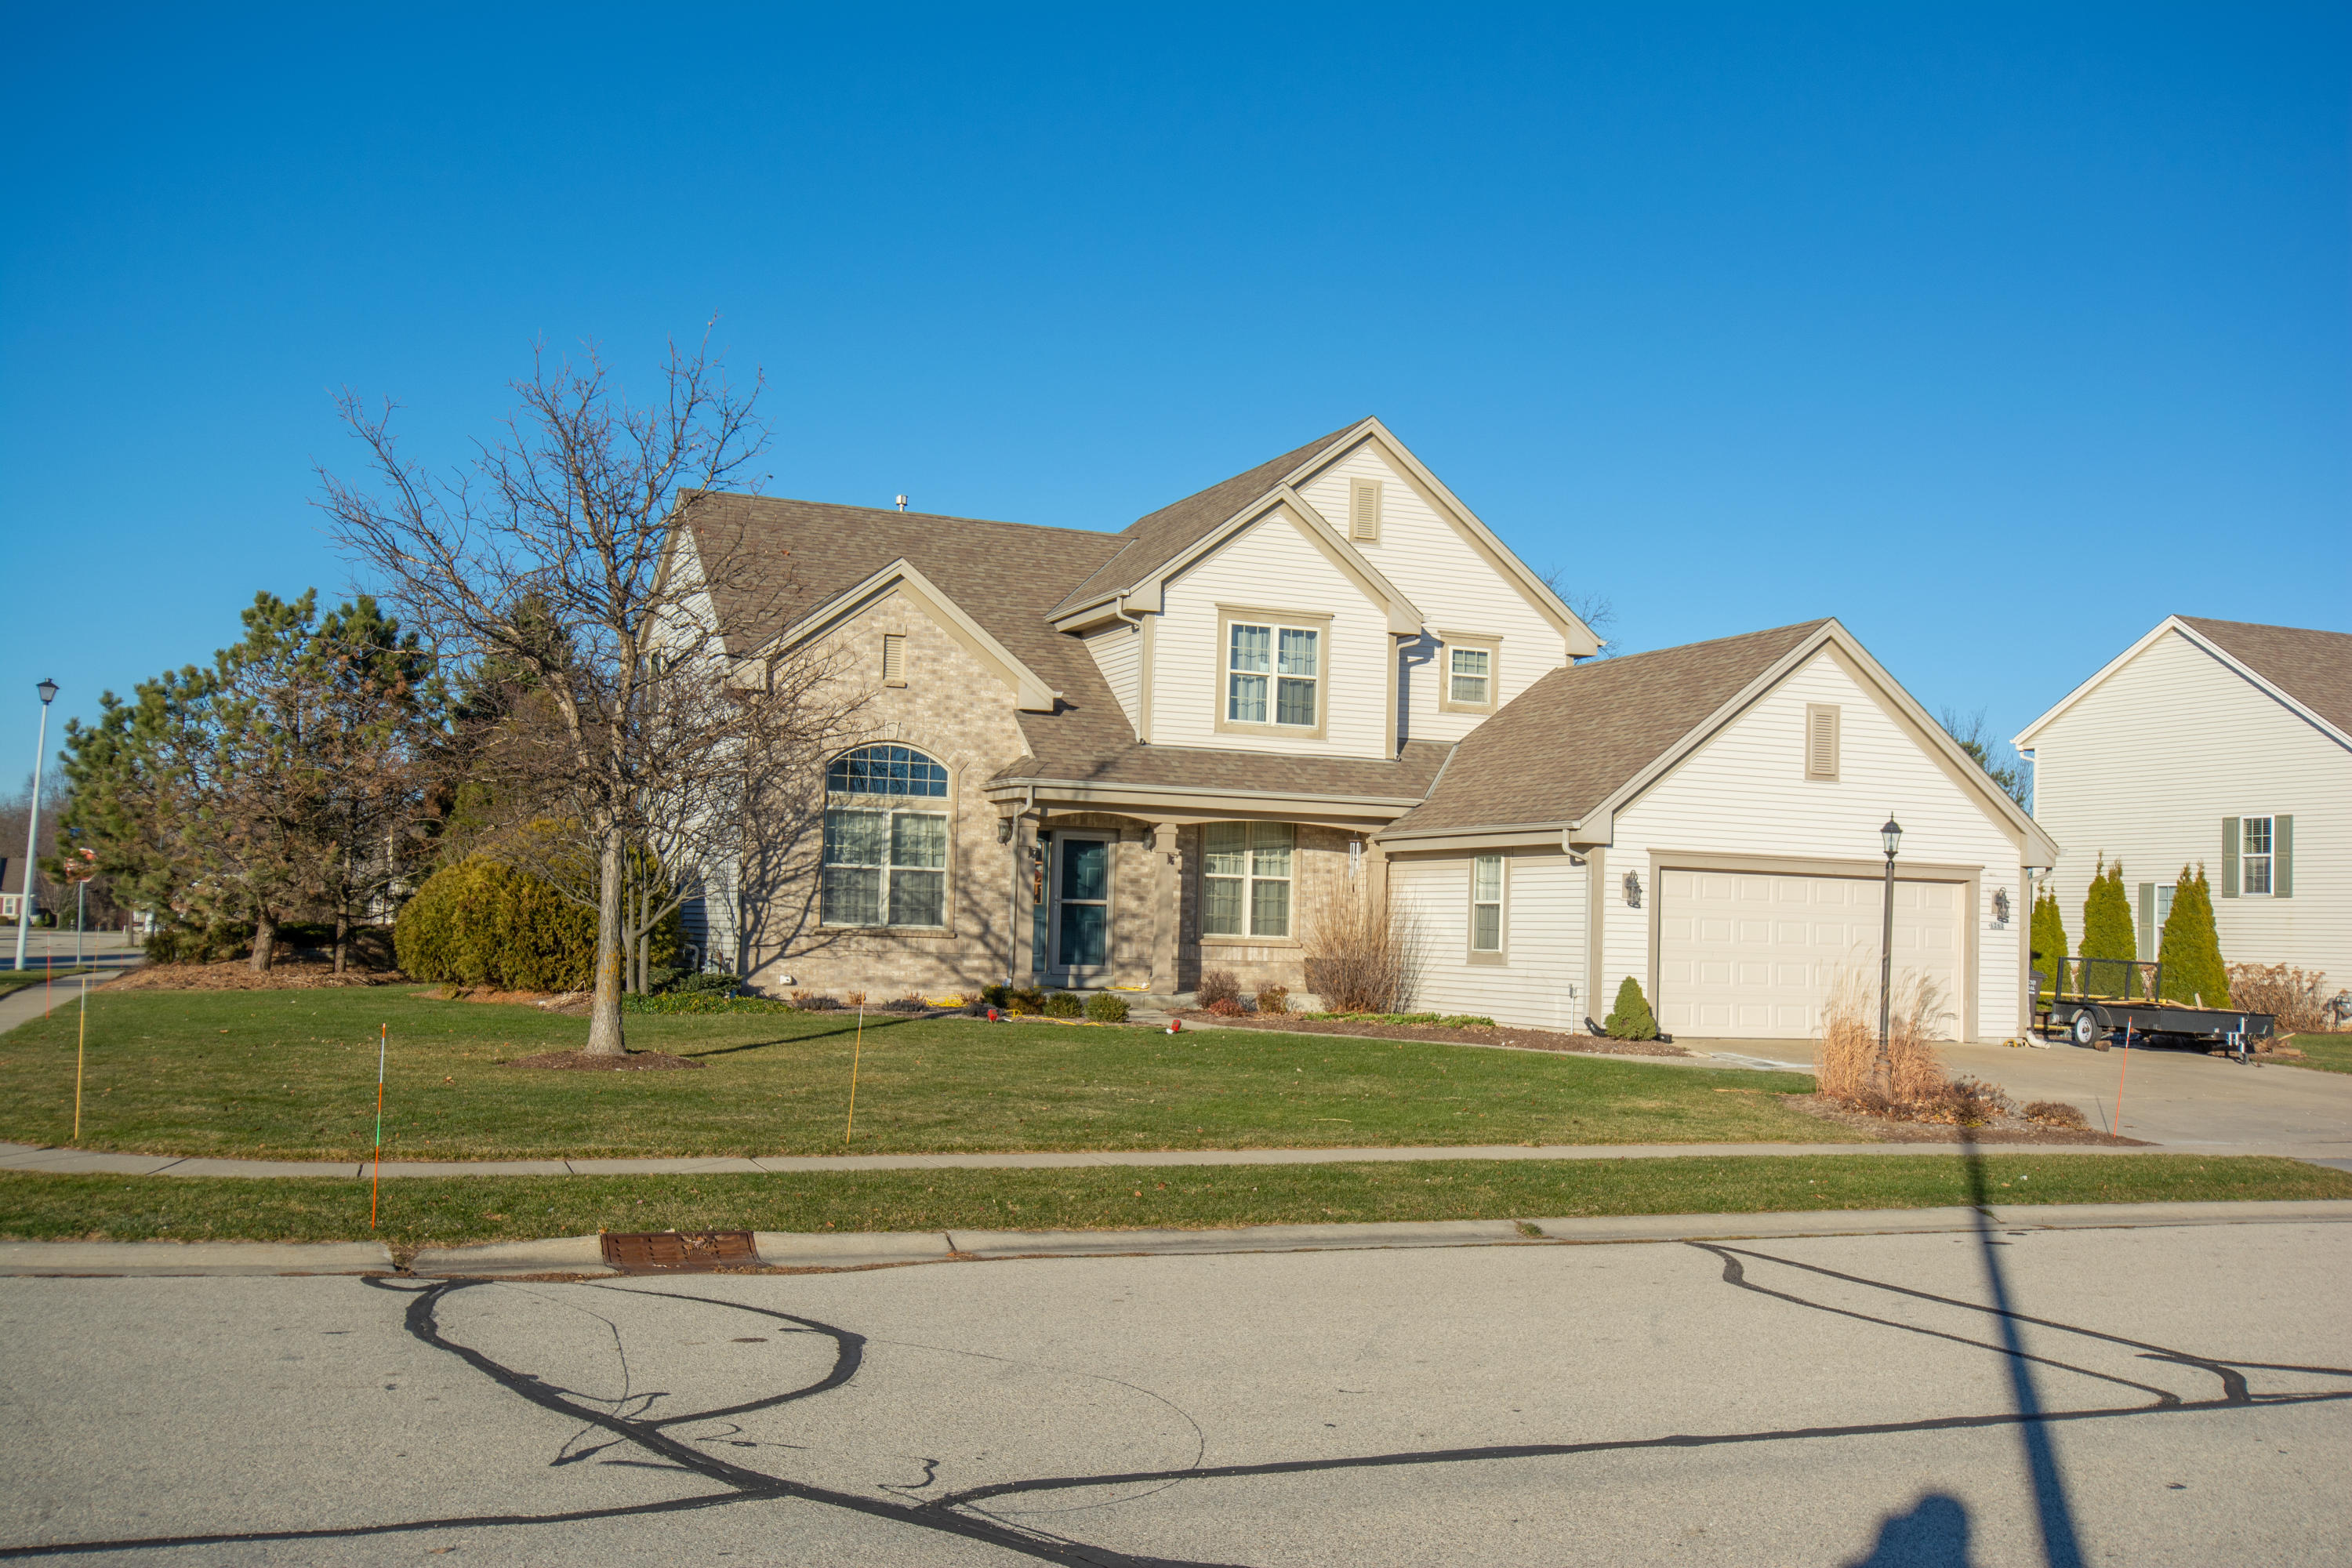 1262 Redwing Dr, Oconomowoc, Wisconsin 53066, 4 Bedrooms Bedrooms, ,2 BathroomsBathrooms,Single-Family,For Sale,Redwing Dr,1723365